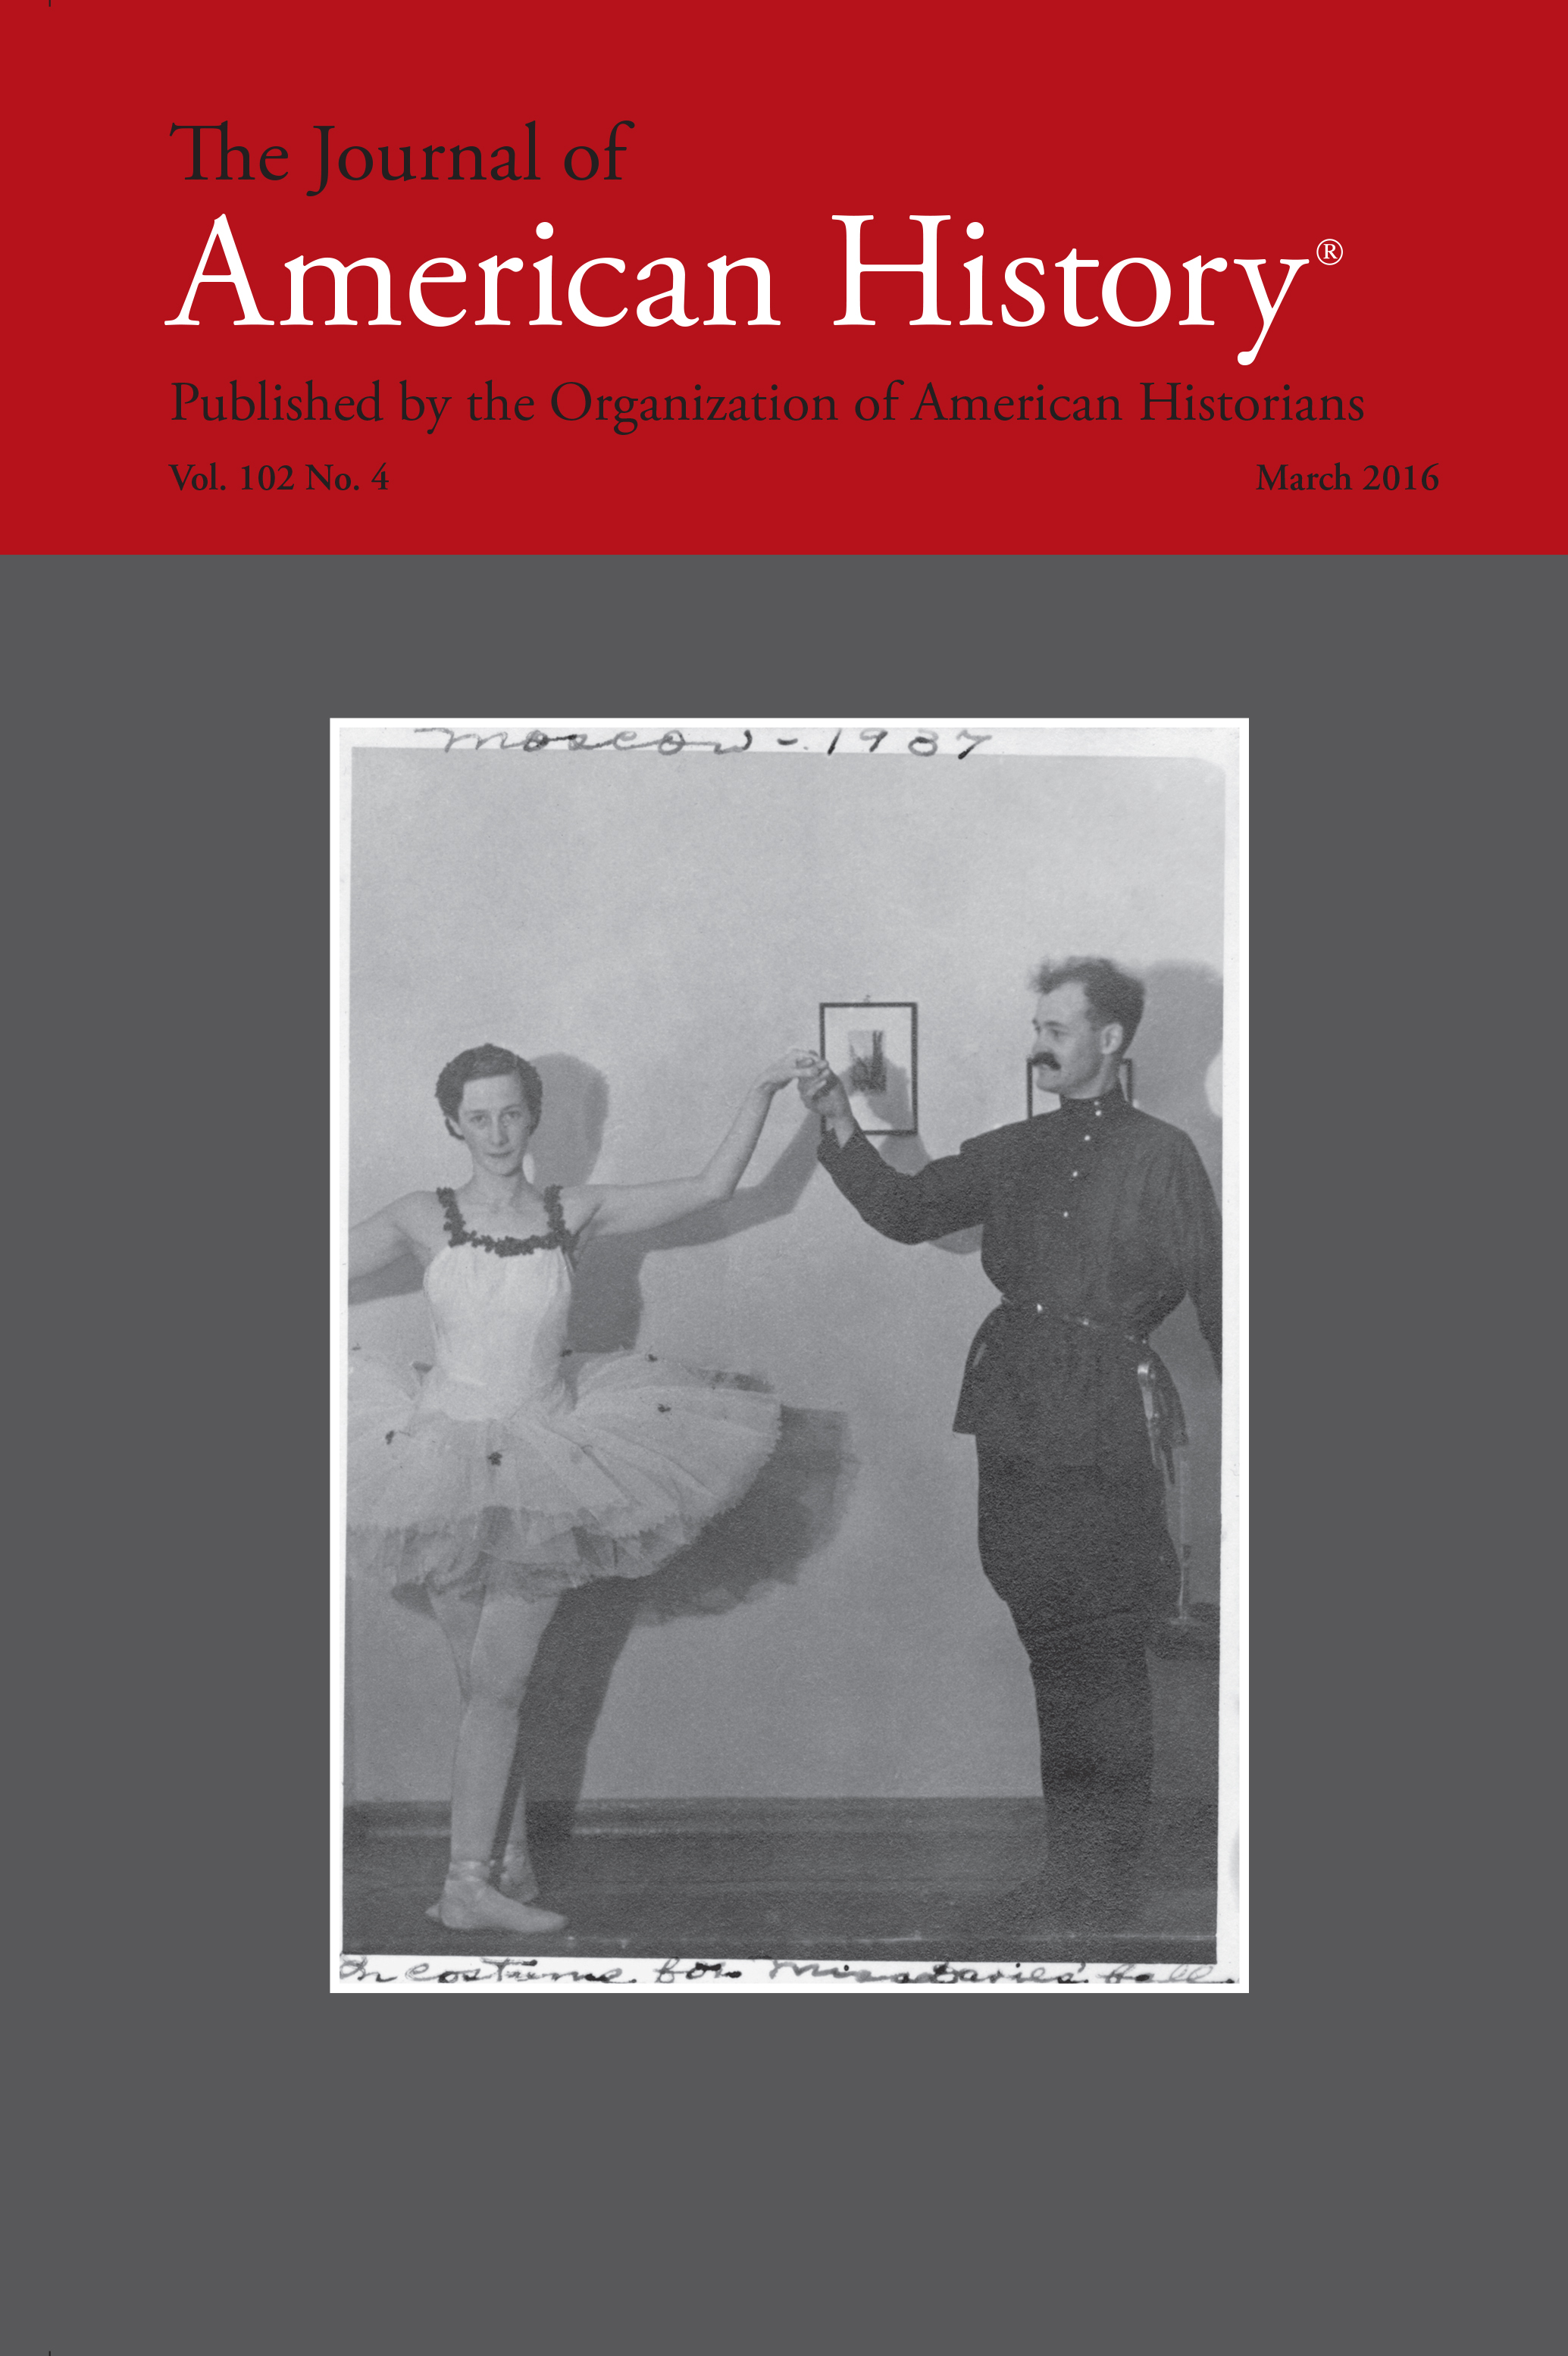 Journal Cover - Title in black and white lettering in a red banner above a black and white photograph of a ballerina and a soldier against a grey background.